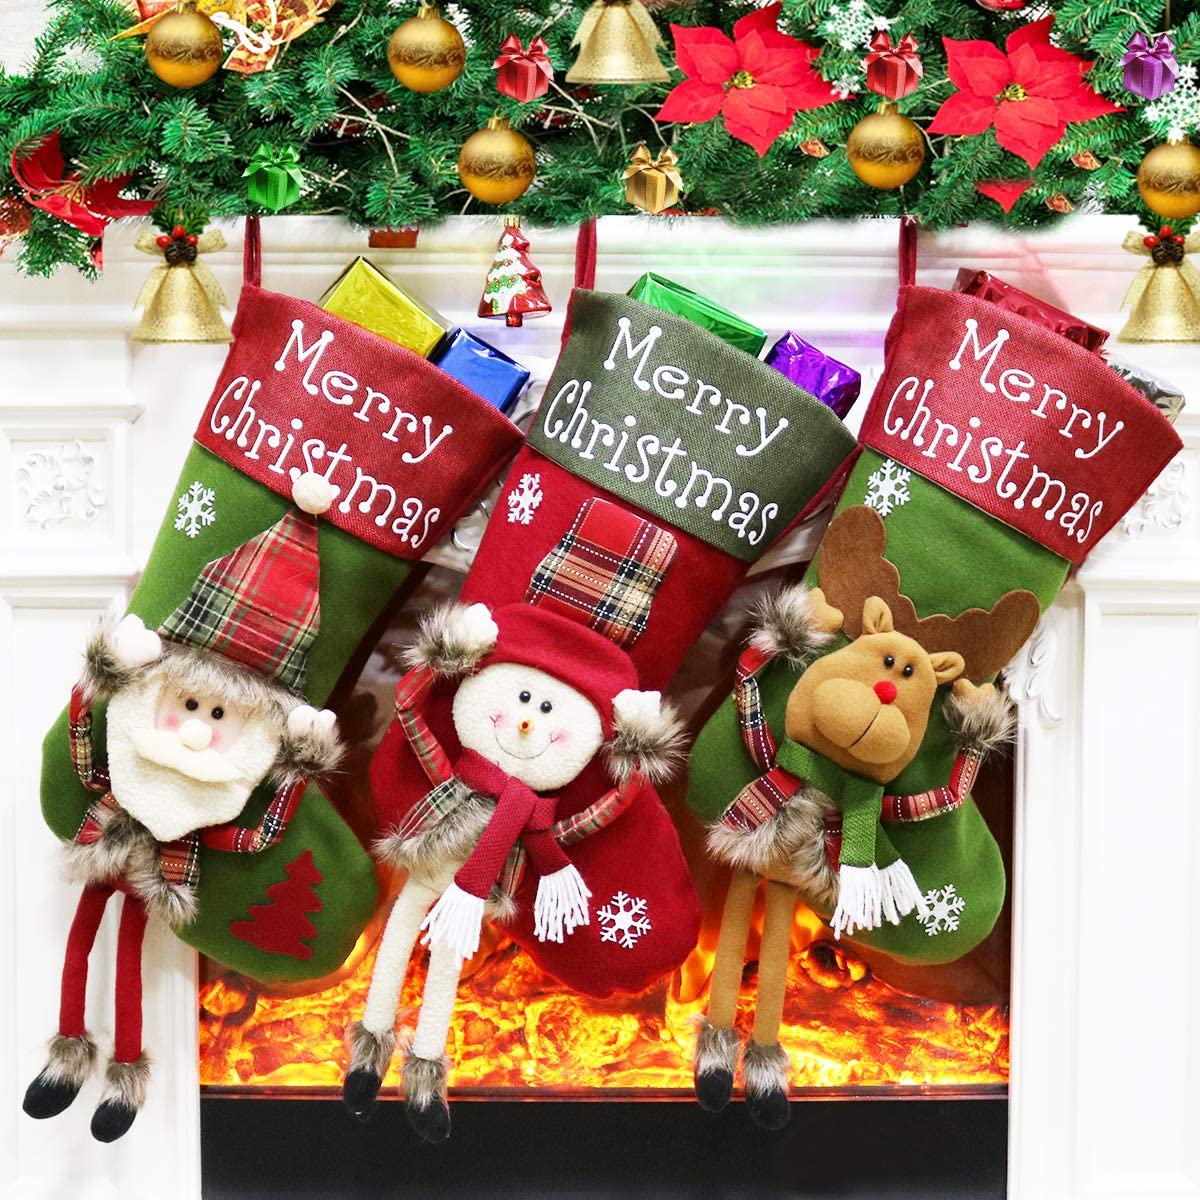 "Dreampark Christmas Stockings, Big Xmas Stockings Decoration - 18"" Santa Snowman Reindeer Stocking for Home Decor Set of 3"